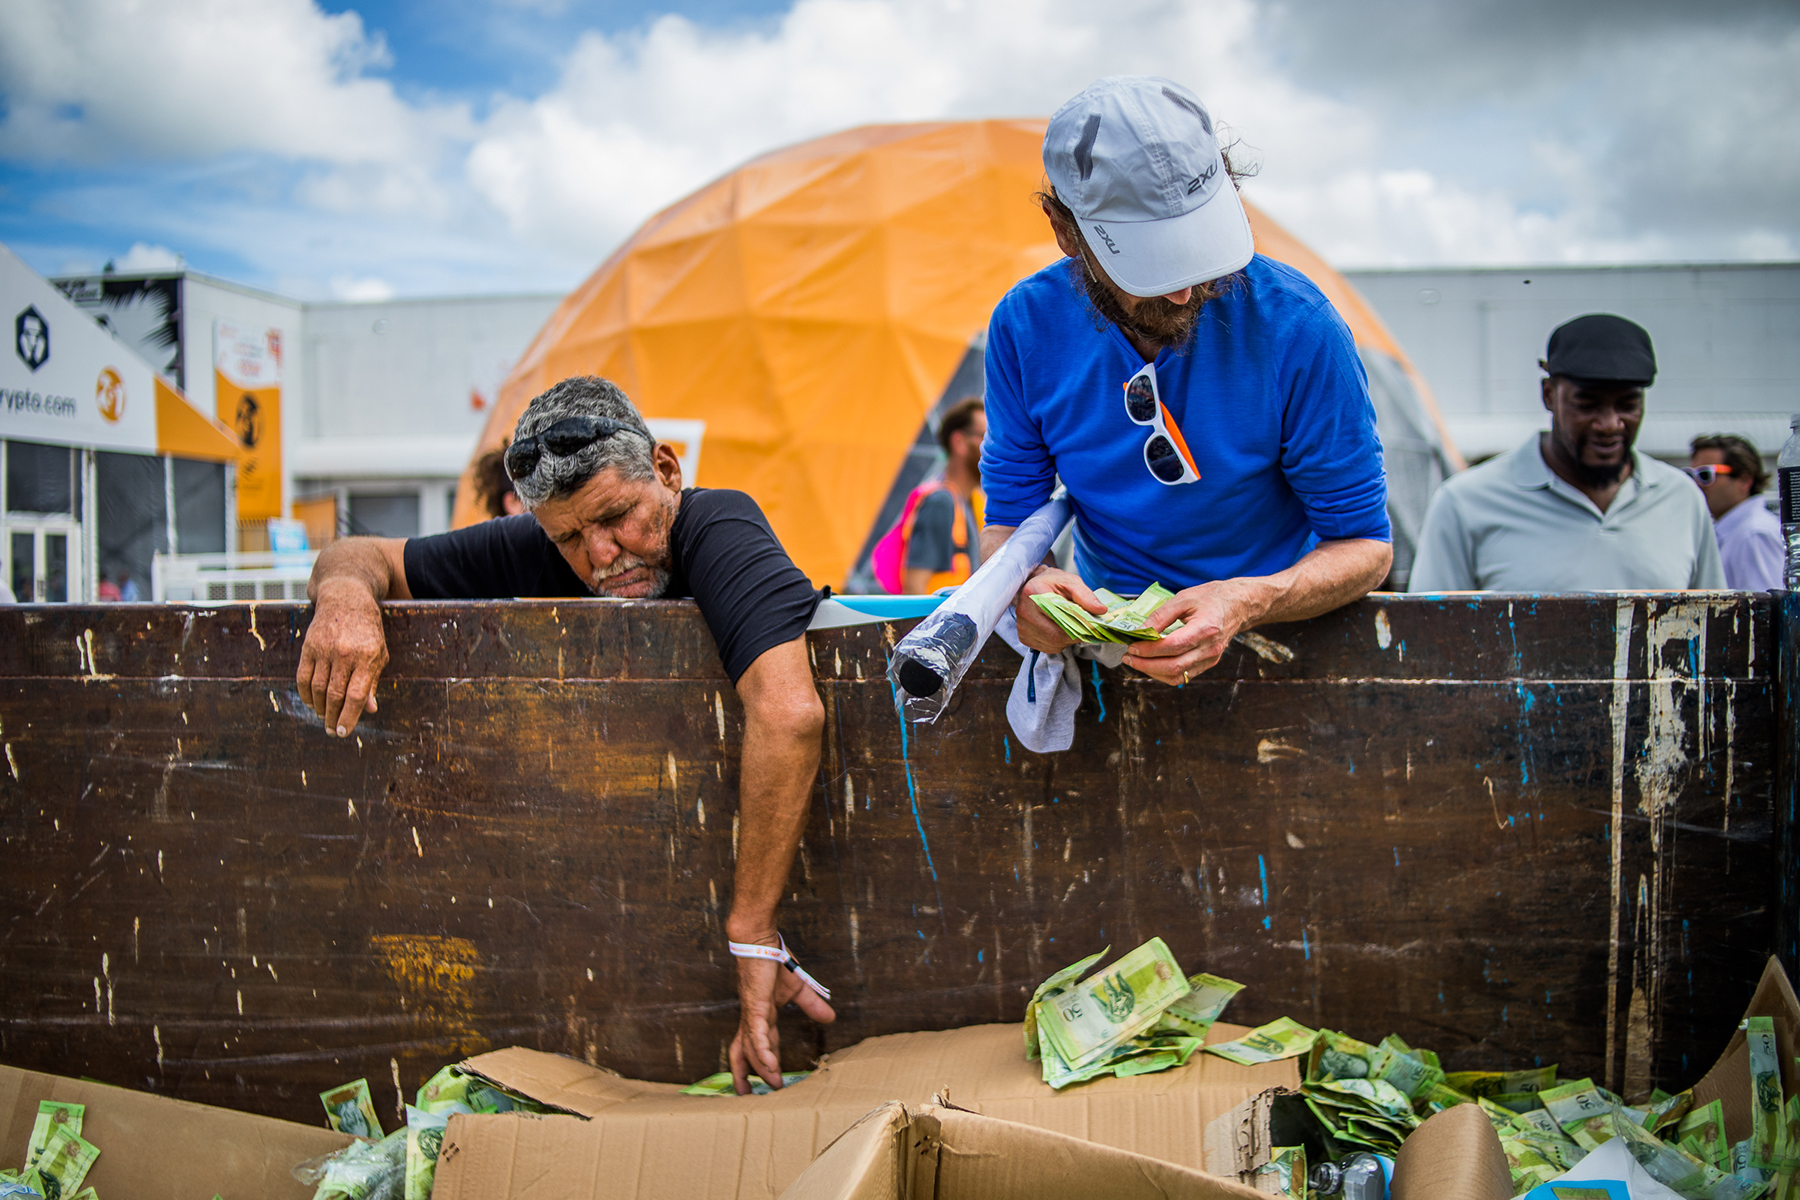 Festival attendees reach into a dumpster filled with Venezuelan Bolivars.